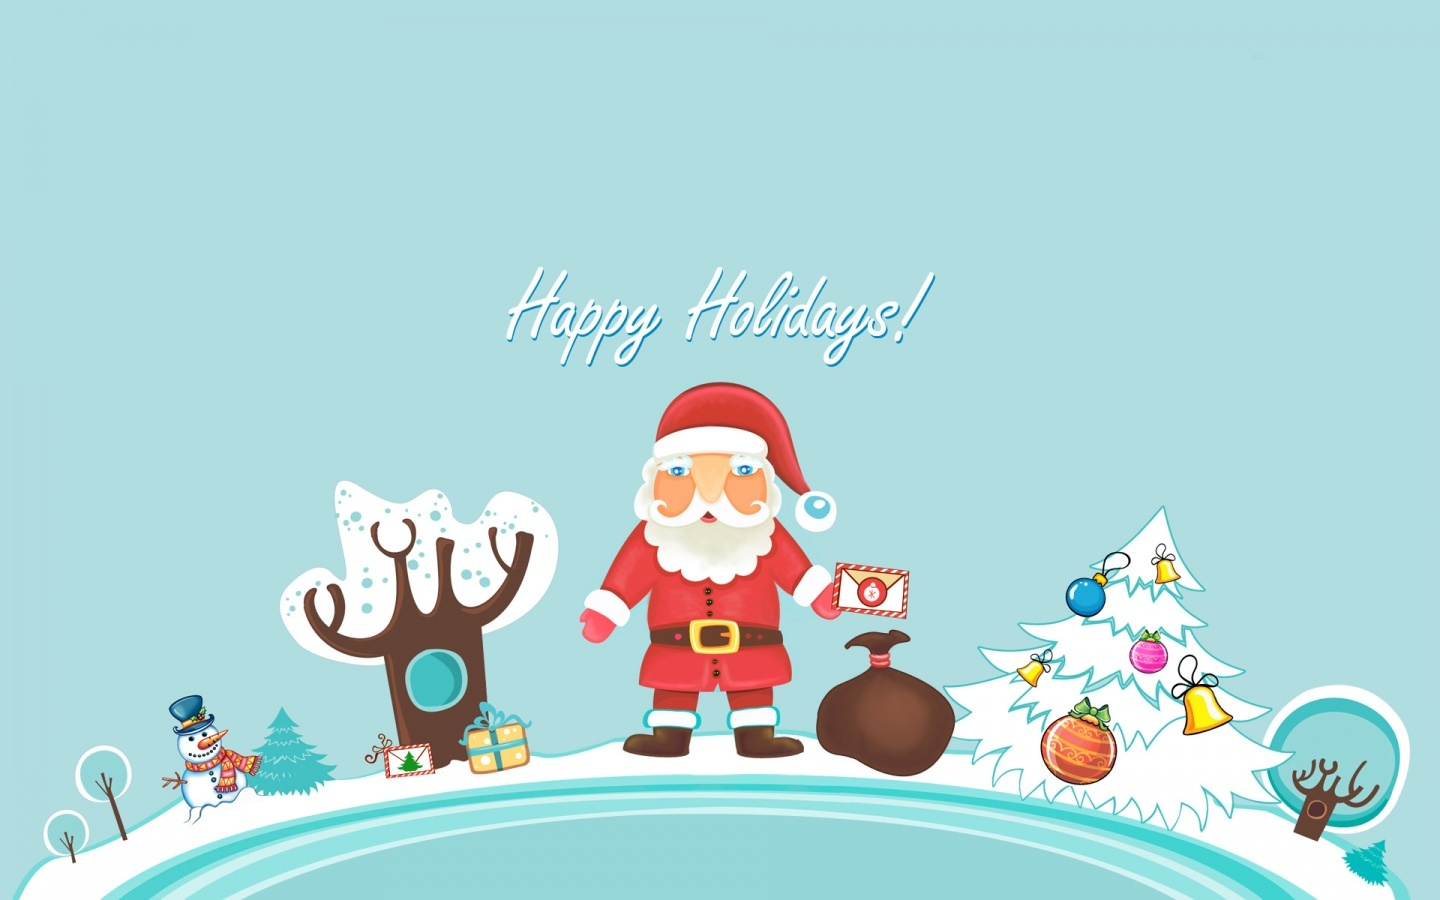 santa_claus_happy_holidays-1440x900